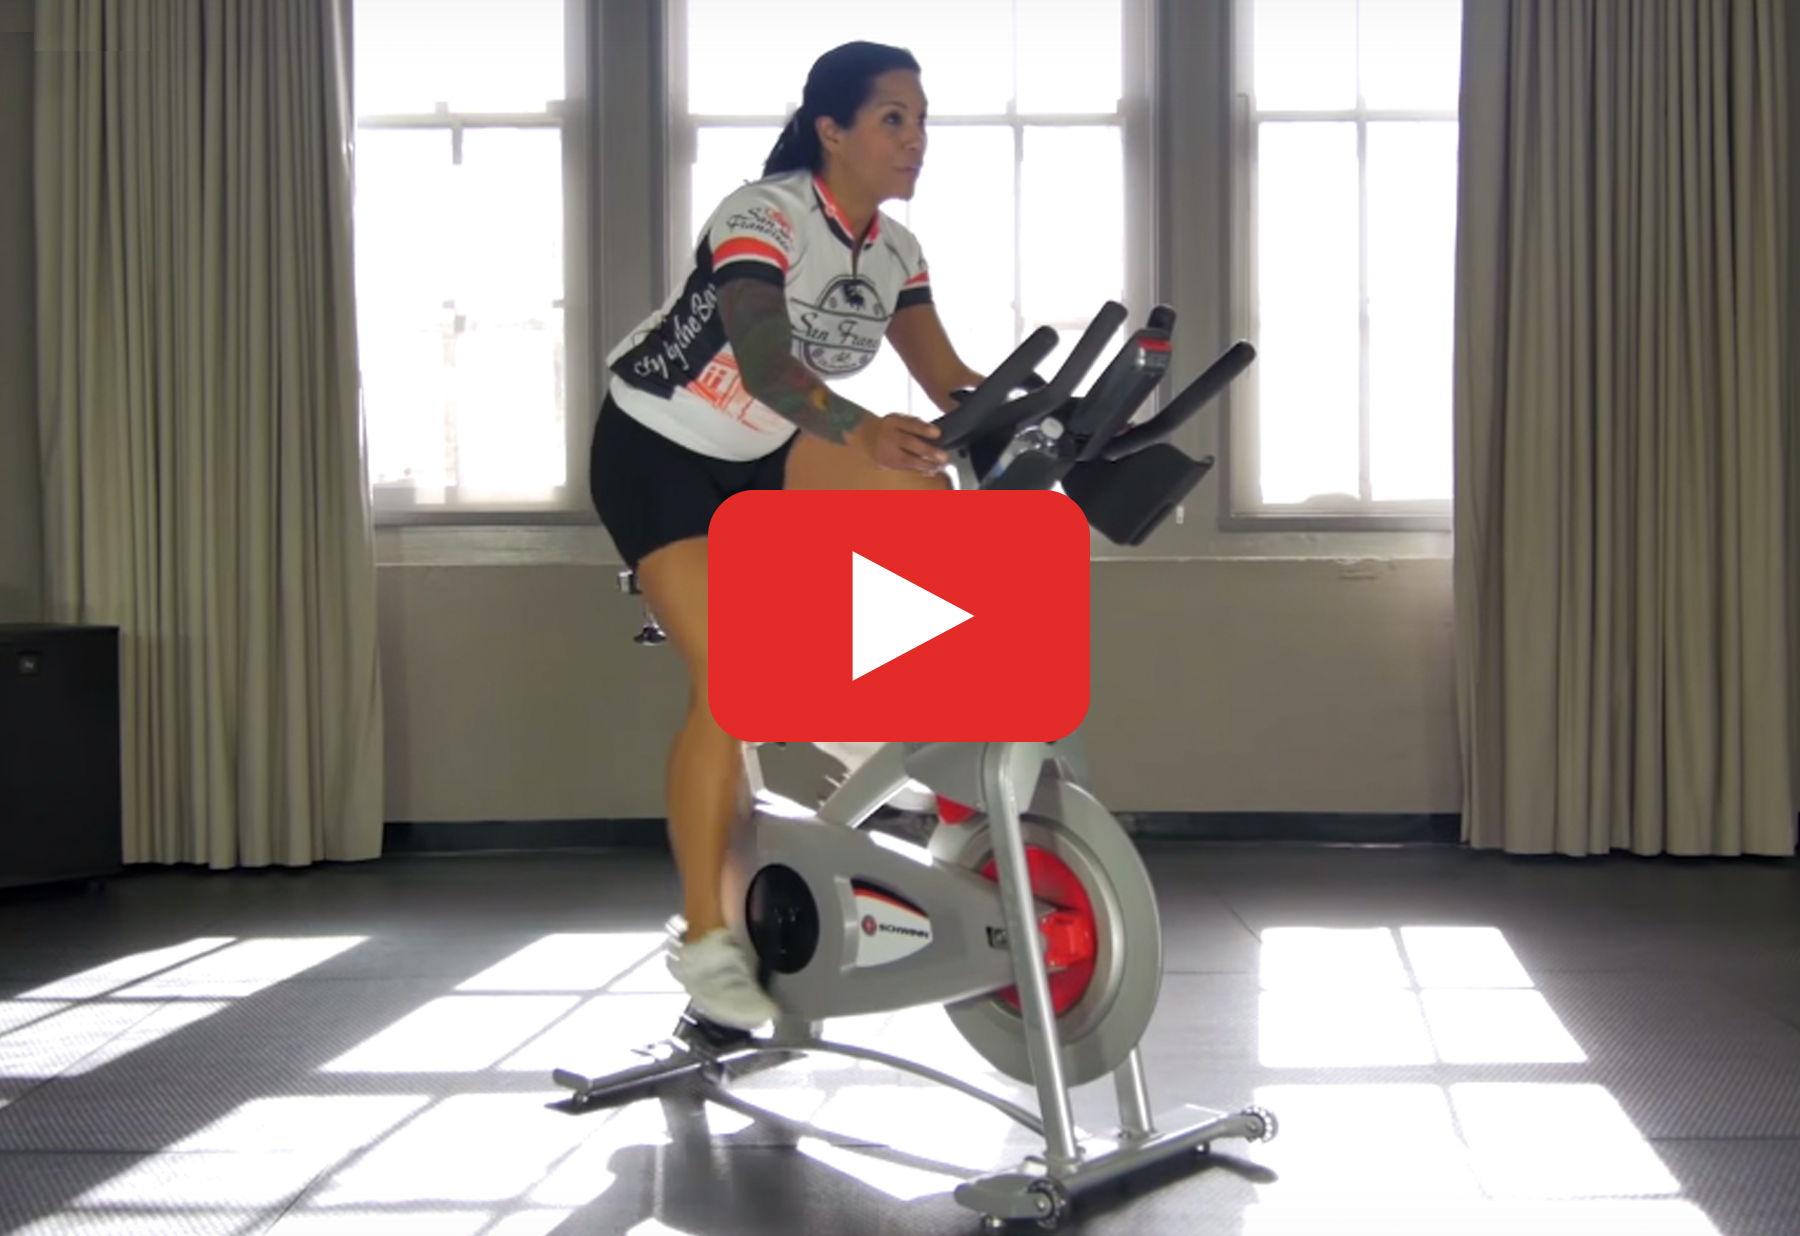 Free Indoor Cycling Workout Video